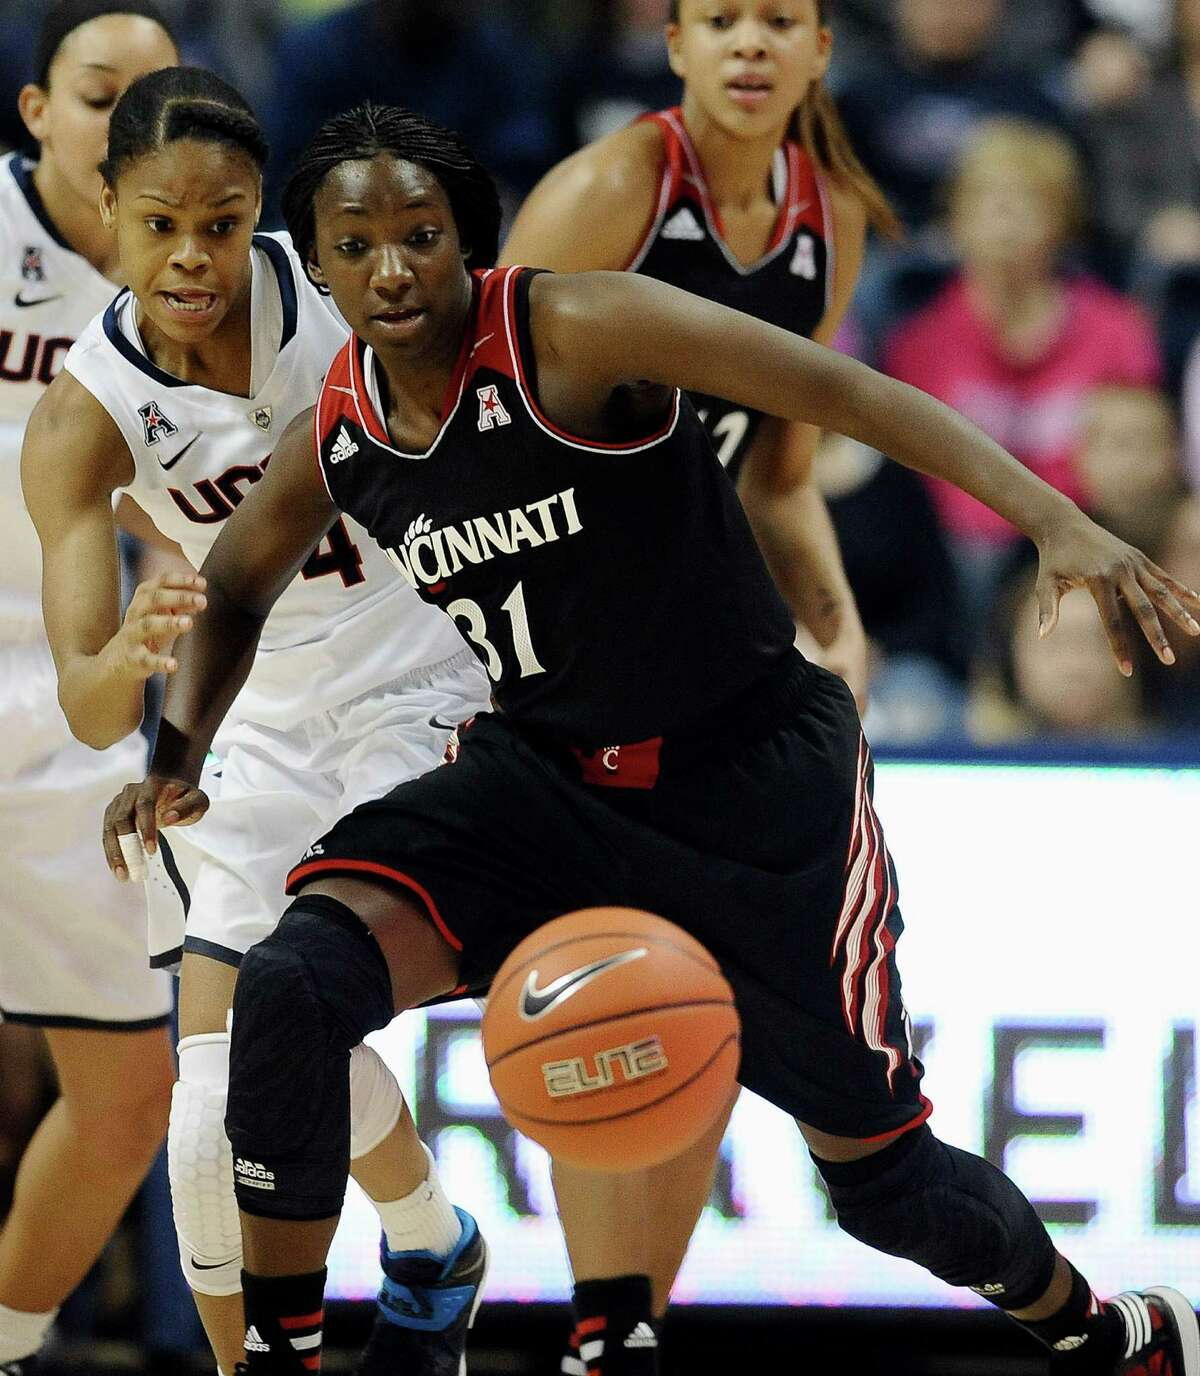 Connecticut's Moriah Jefferson, left, and Cincinnati's Dayeesha Hollins, right, chase a loose ball during the first half of an NCAA college basketball game on Sunday, Dec. 29, 2013, in Storrs, Conn.